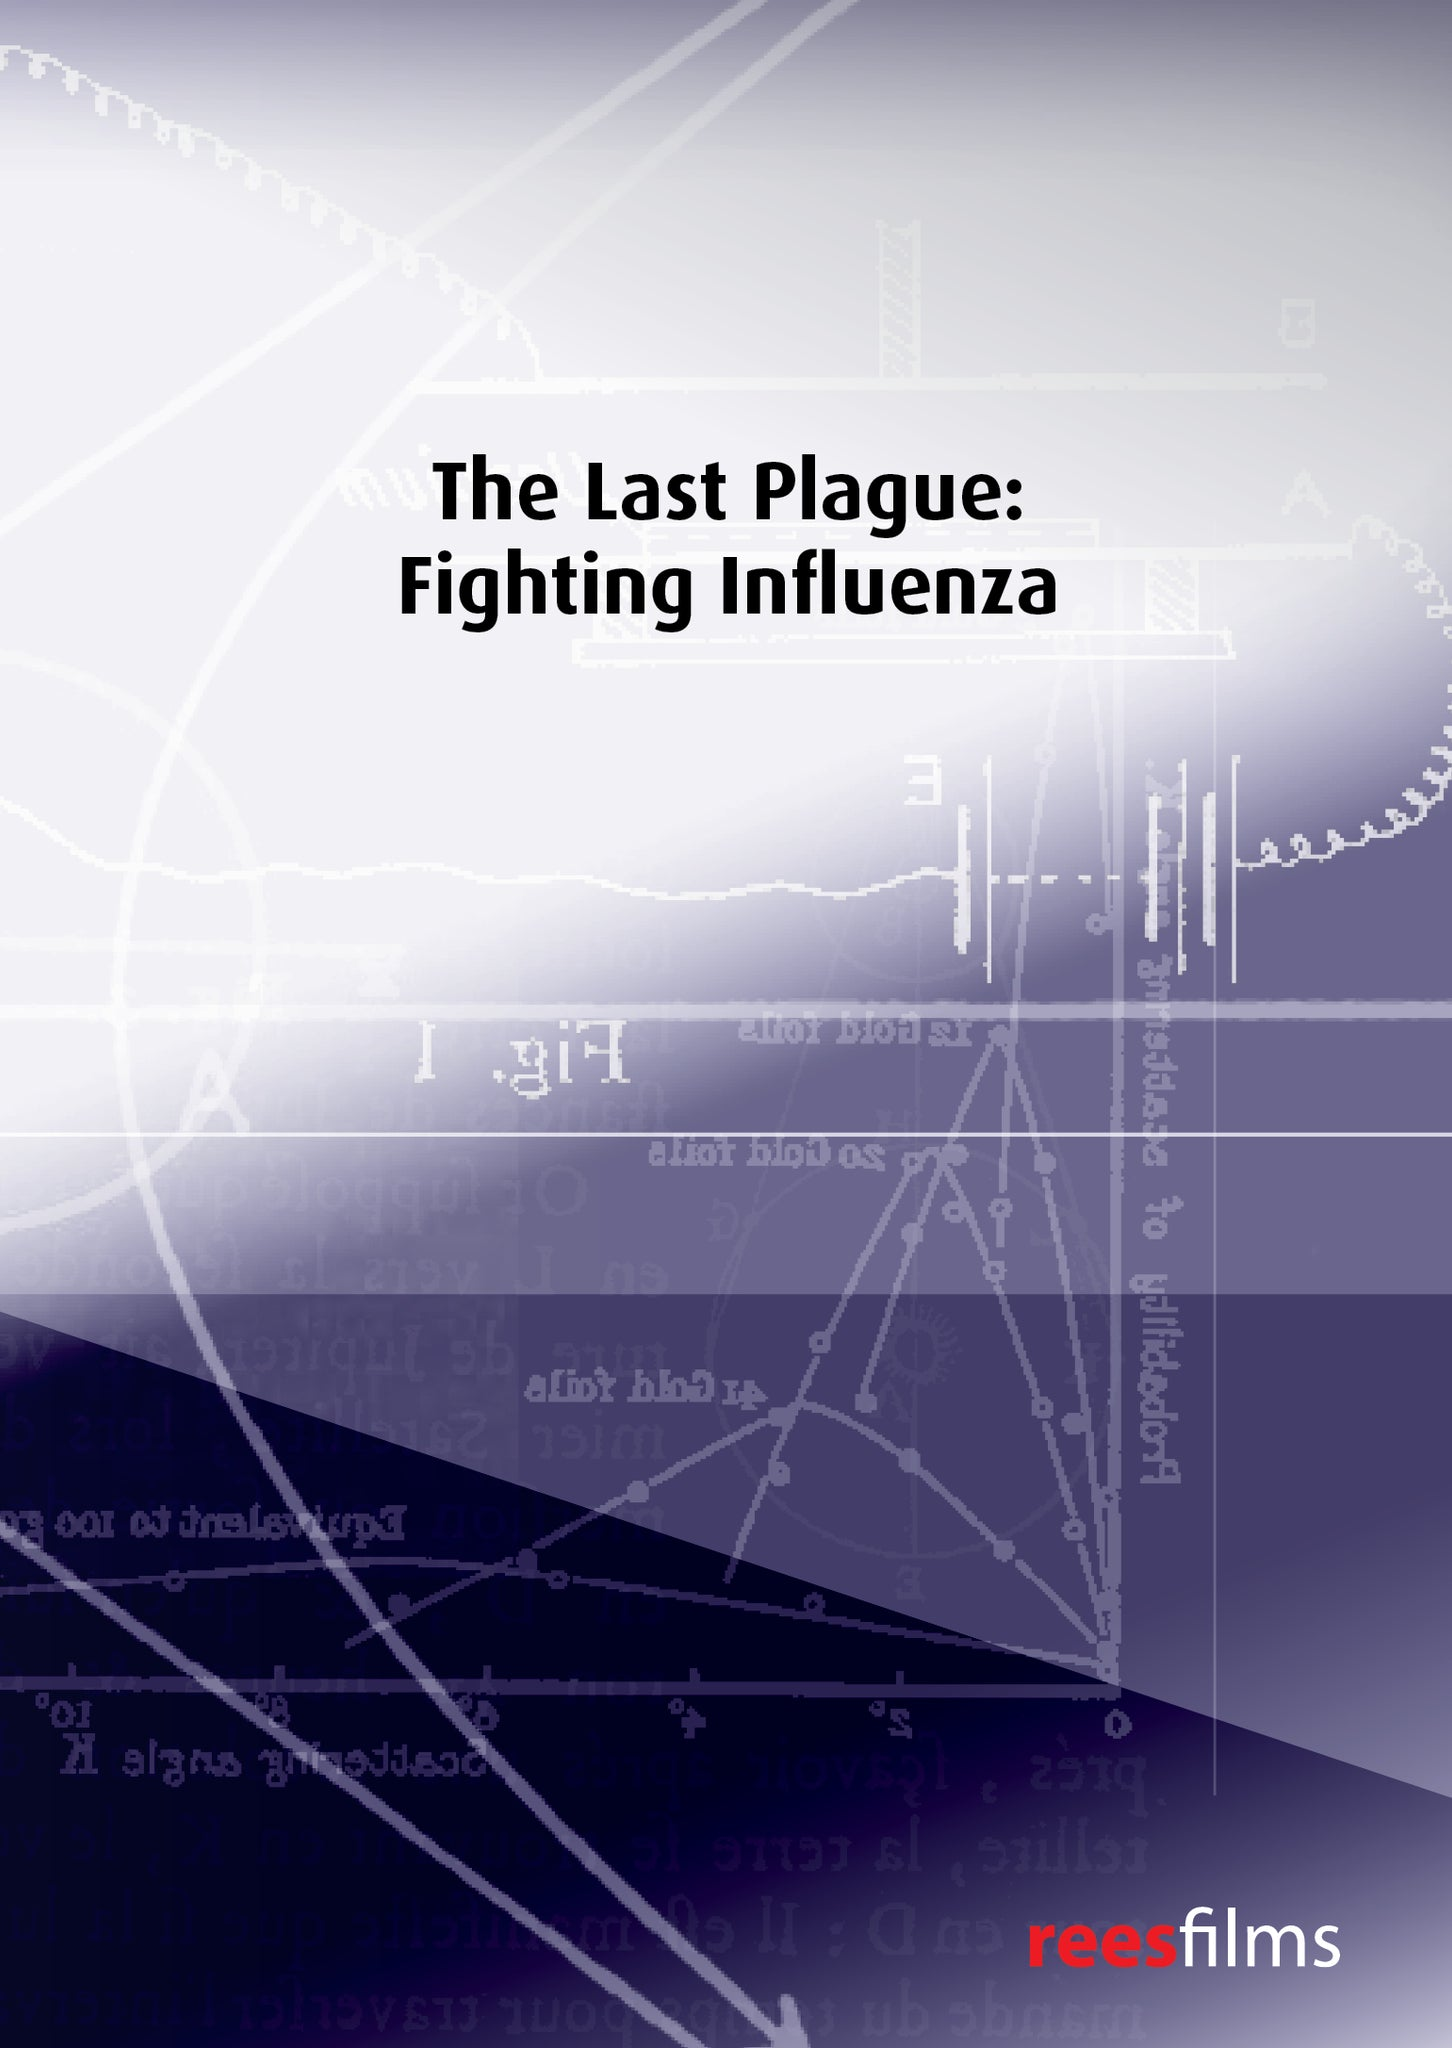 The Last Plague: fighting influenza